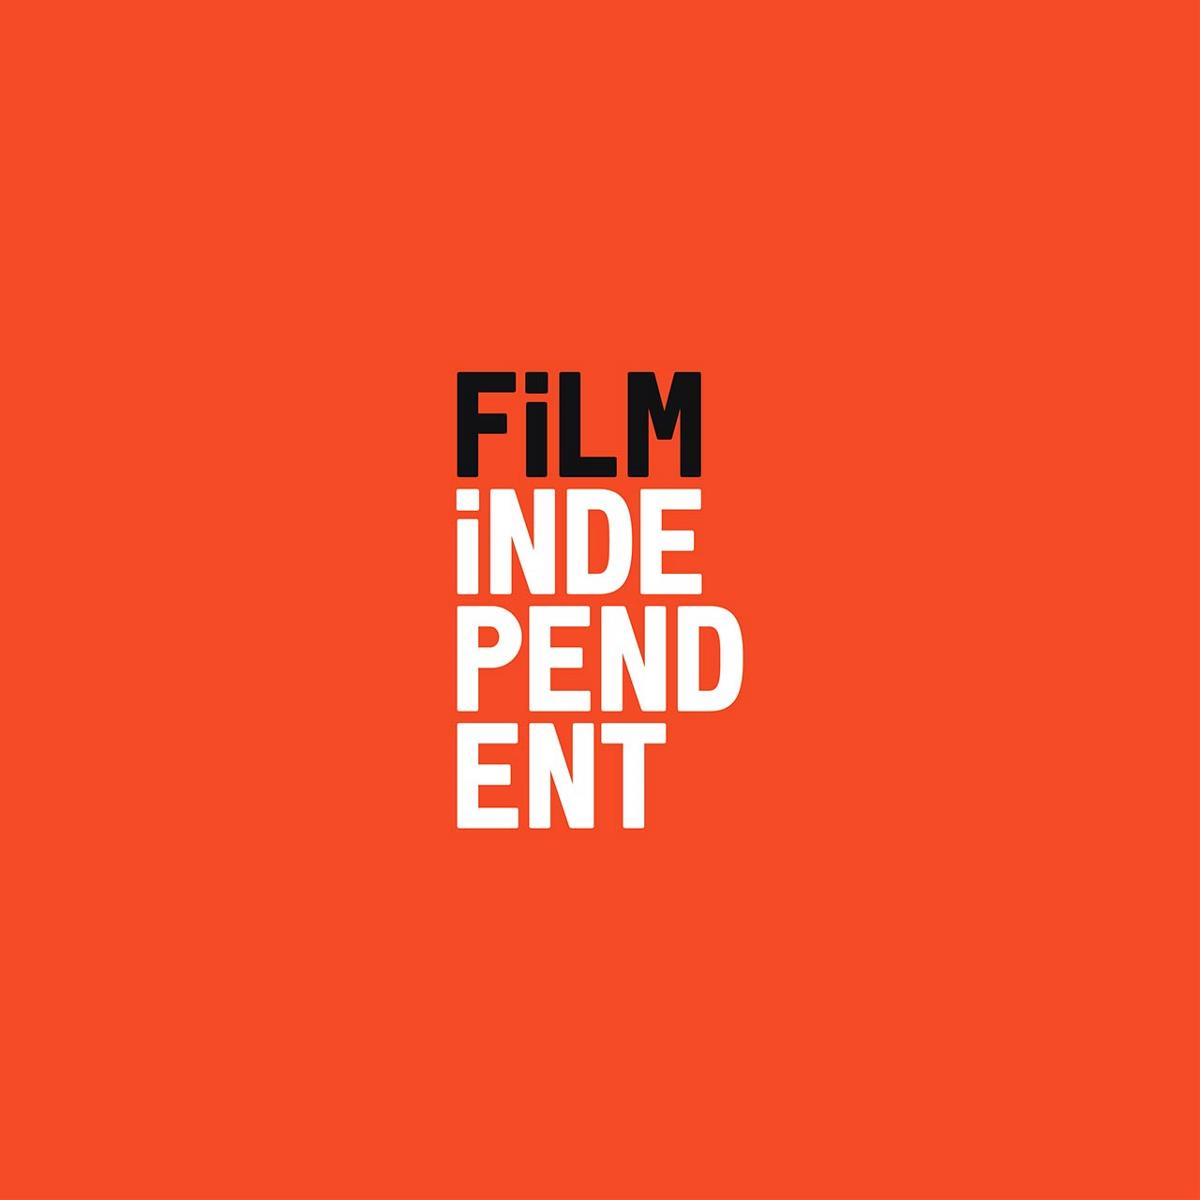 Film Independent视觉形象